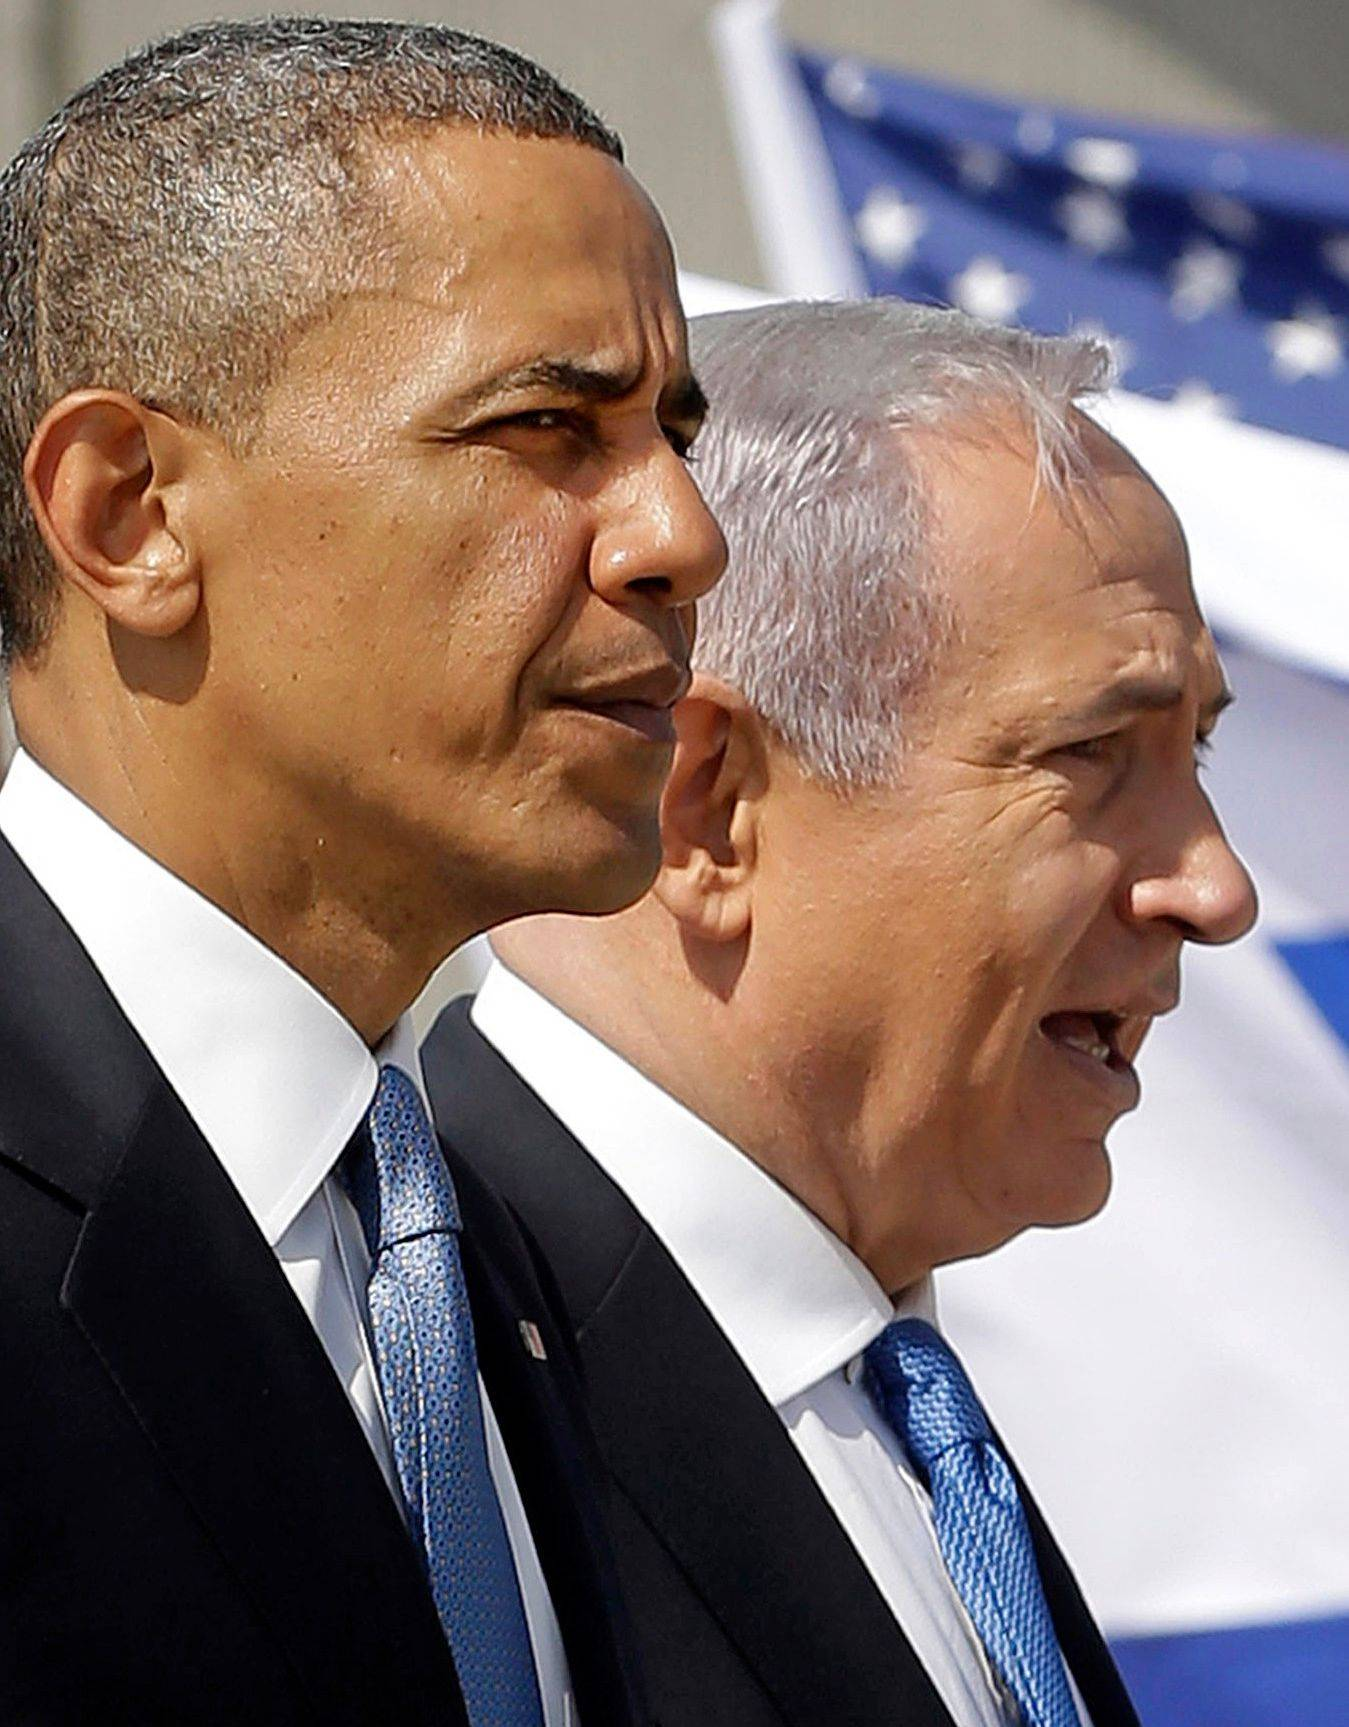 President Barack Obama and Israeli Prime Minister Benjamin Netanyahu tour the Iron Dome Battery defense system at Ben Gurion International Airport in Tel Aviv Wednesday.